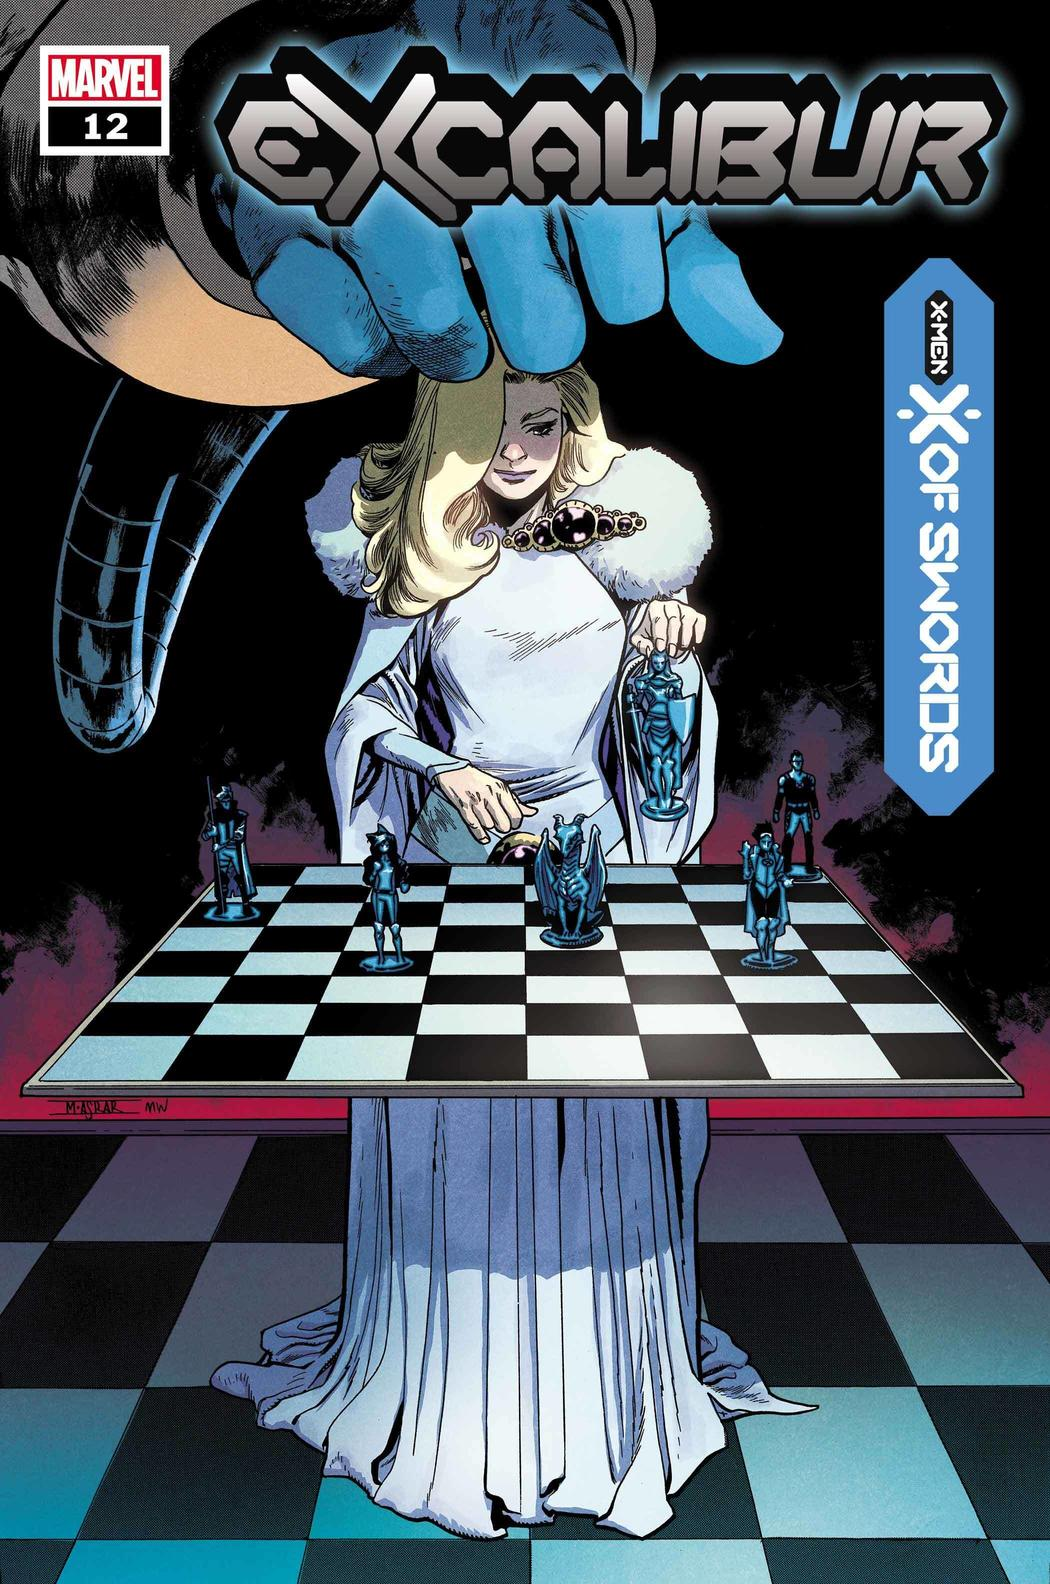 EXCALIBUR #12 WRITTEN BY TINI HOWARD, ART BY MARCUS TO, COVER BY MAHMUD ASRAR